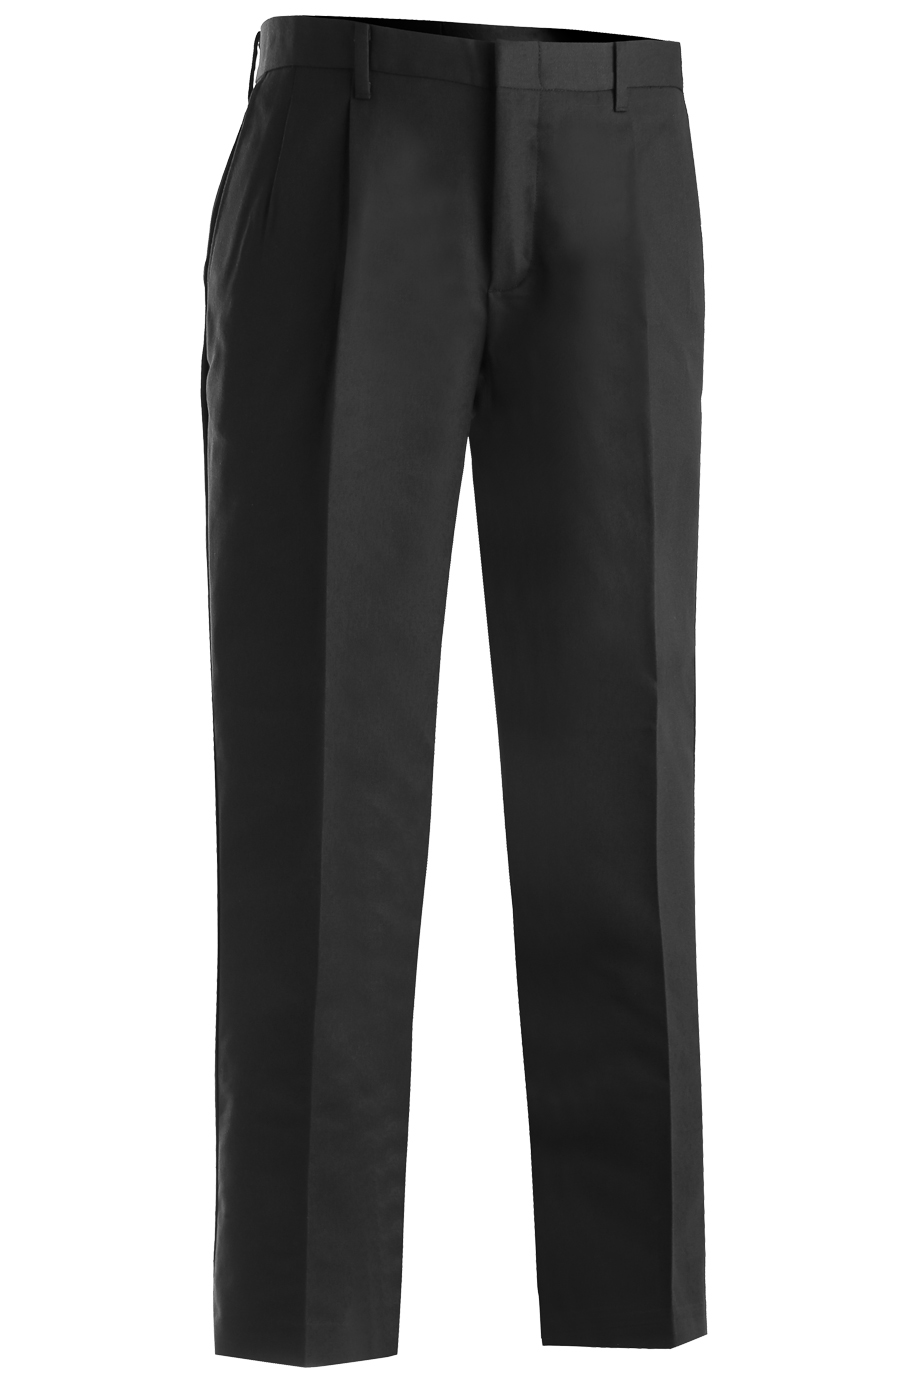 Mens Business Casual Pleated Chino Pant